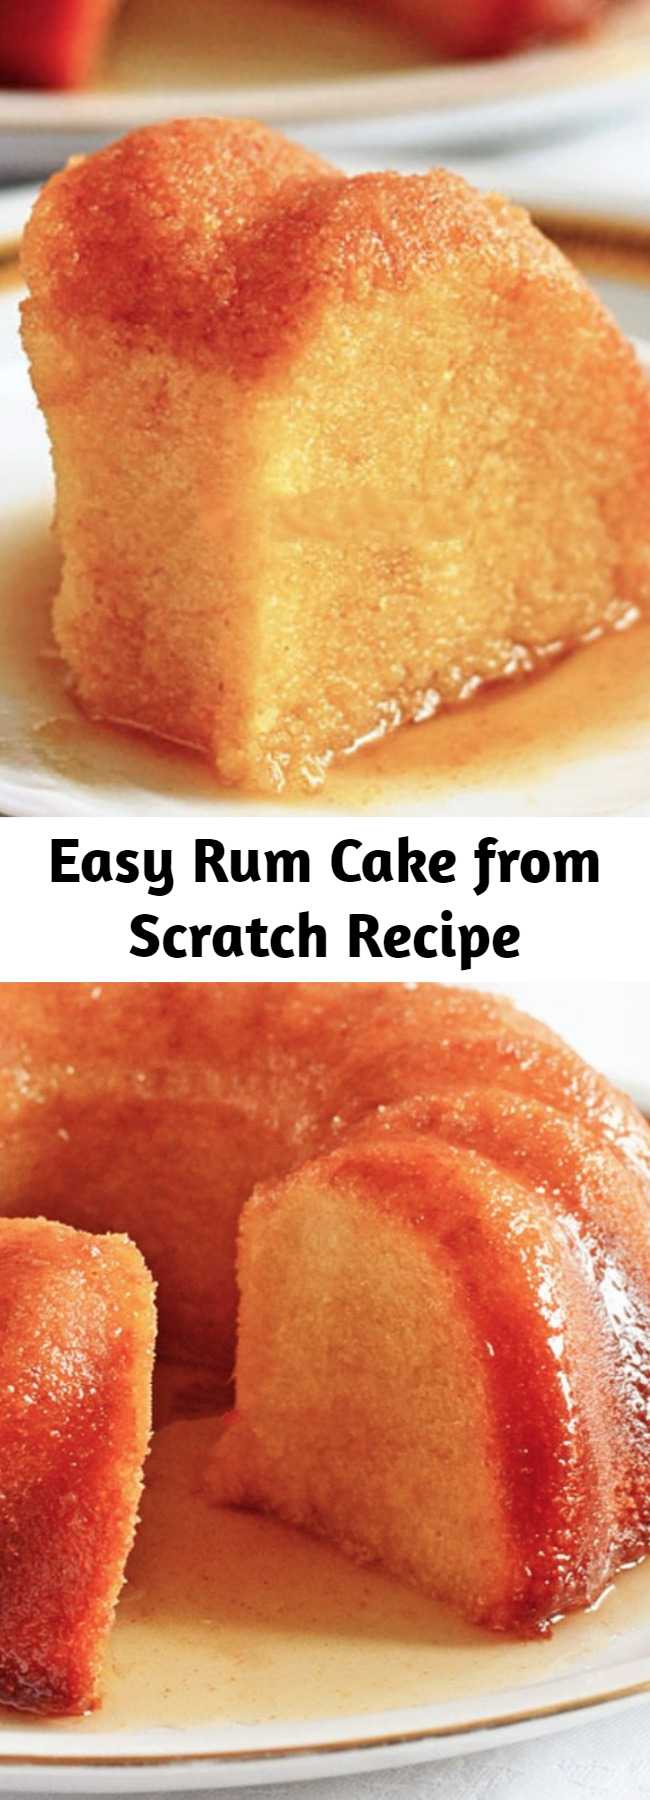 Easy Rum Cake from Scratch Recipe - Rum Cake from Scratch is dense, rich and soaked with flavorful thick butter rum sauce. Great for every party!